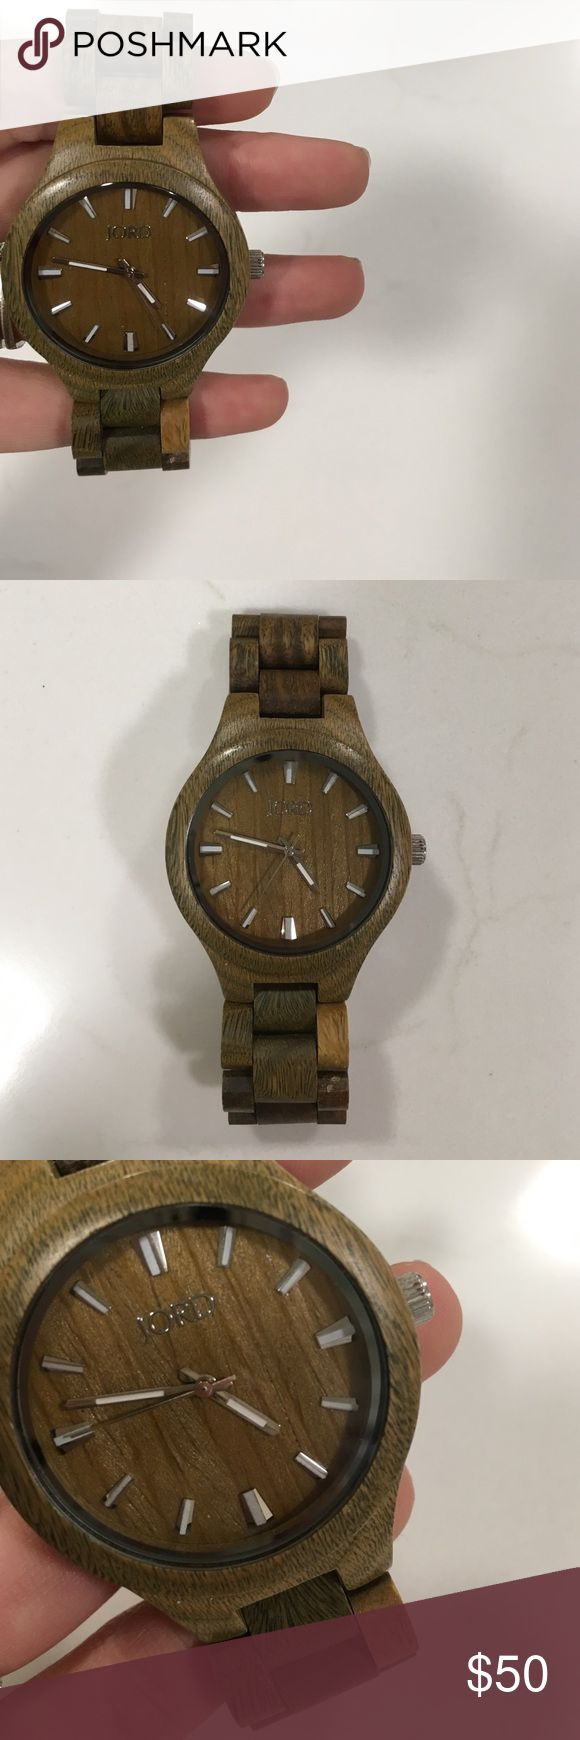 Jord Wood Watch Unique wood watch by Jord Wood Watches. Never worn, great condition Jewelry